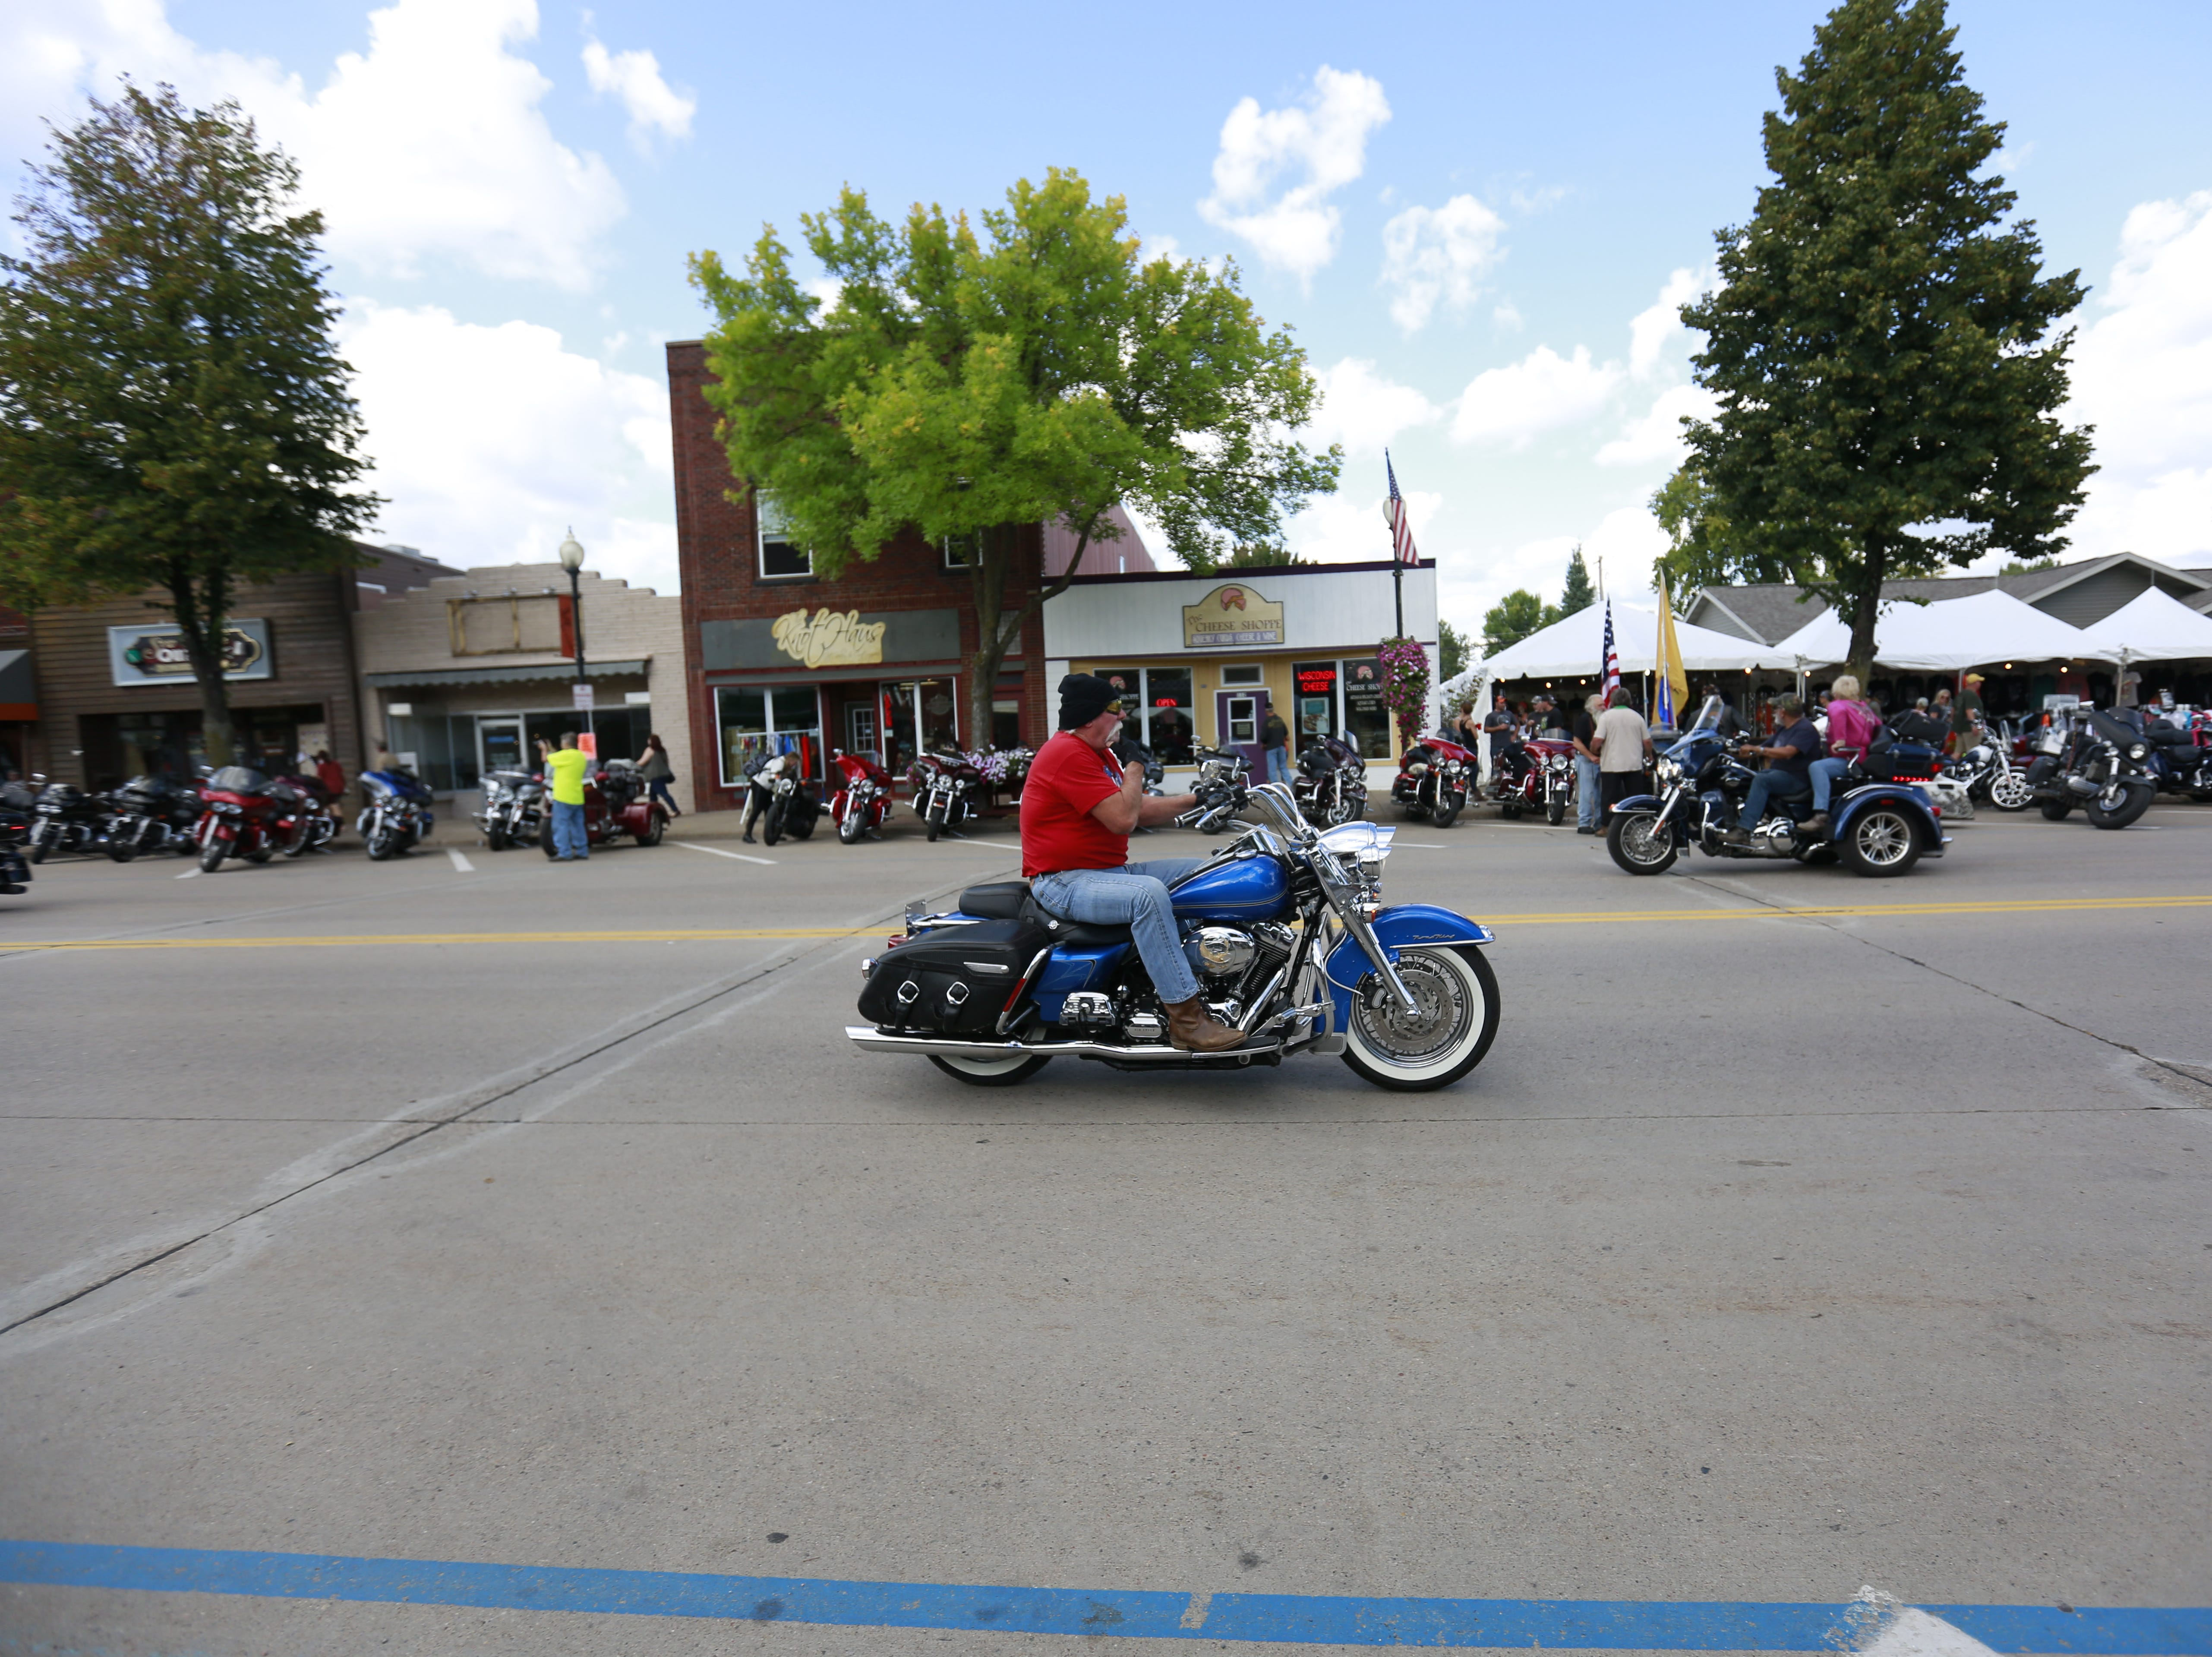 Bikers cruise their motorcycles during the 37th Annual Tomahawk Fall Ride Friday, Sept. 14, 2018, at downtown Tomahawk, Wis. T'xer Zhon Kha/USA TODAY NETWORK-Wisconsin